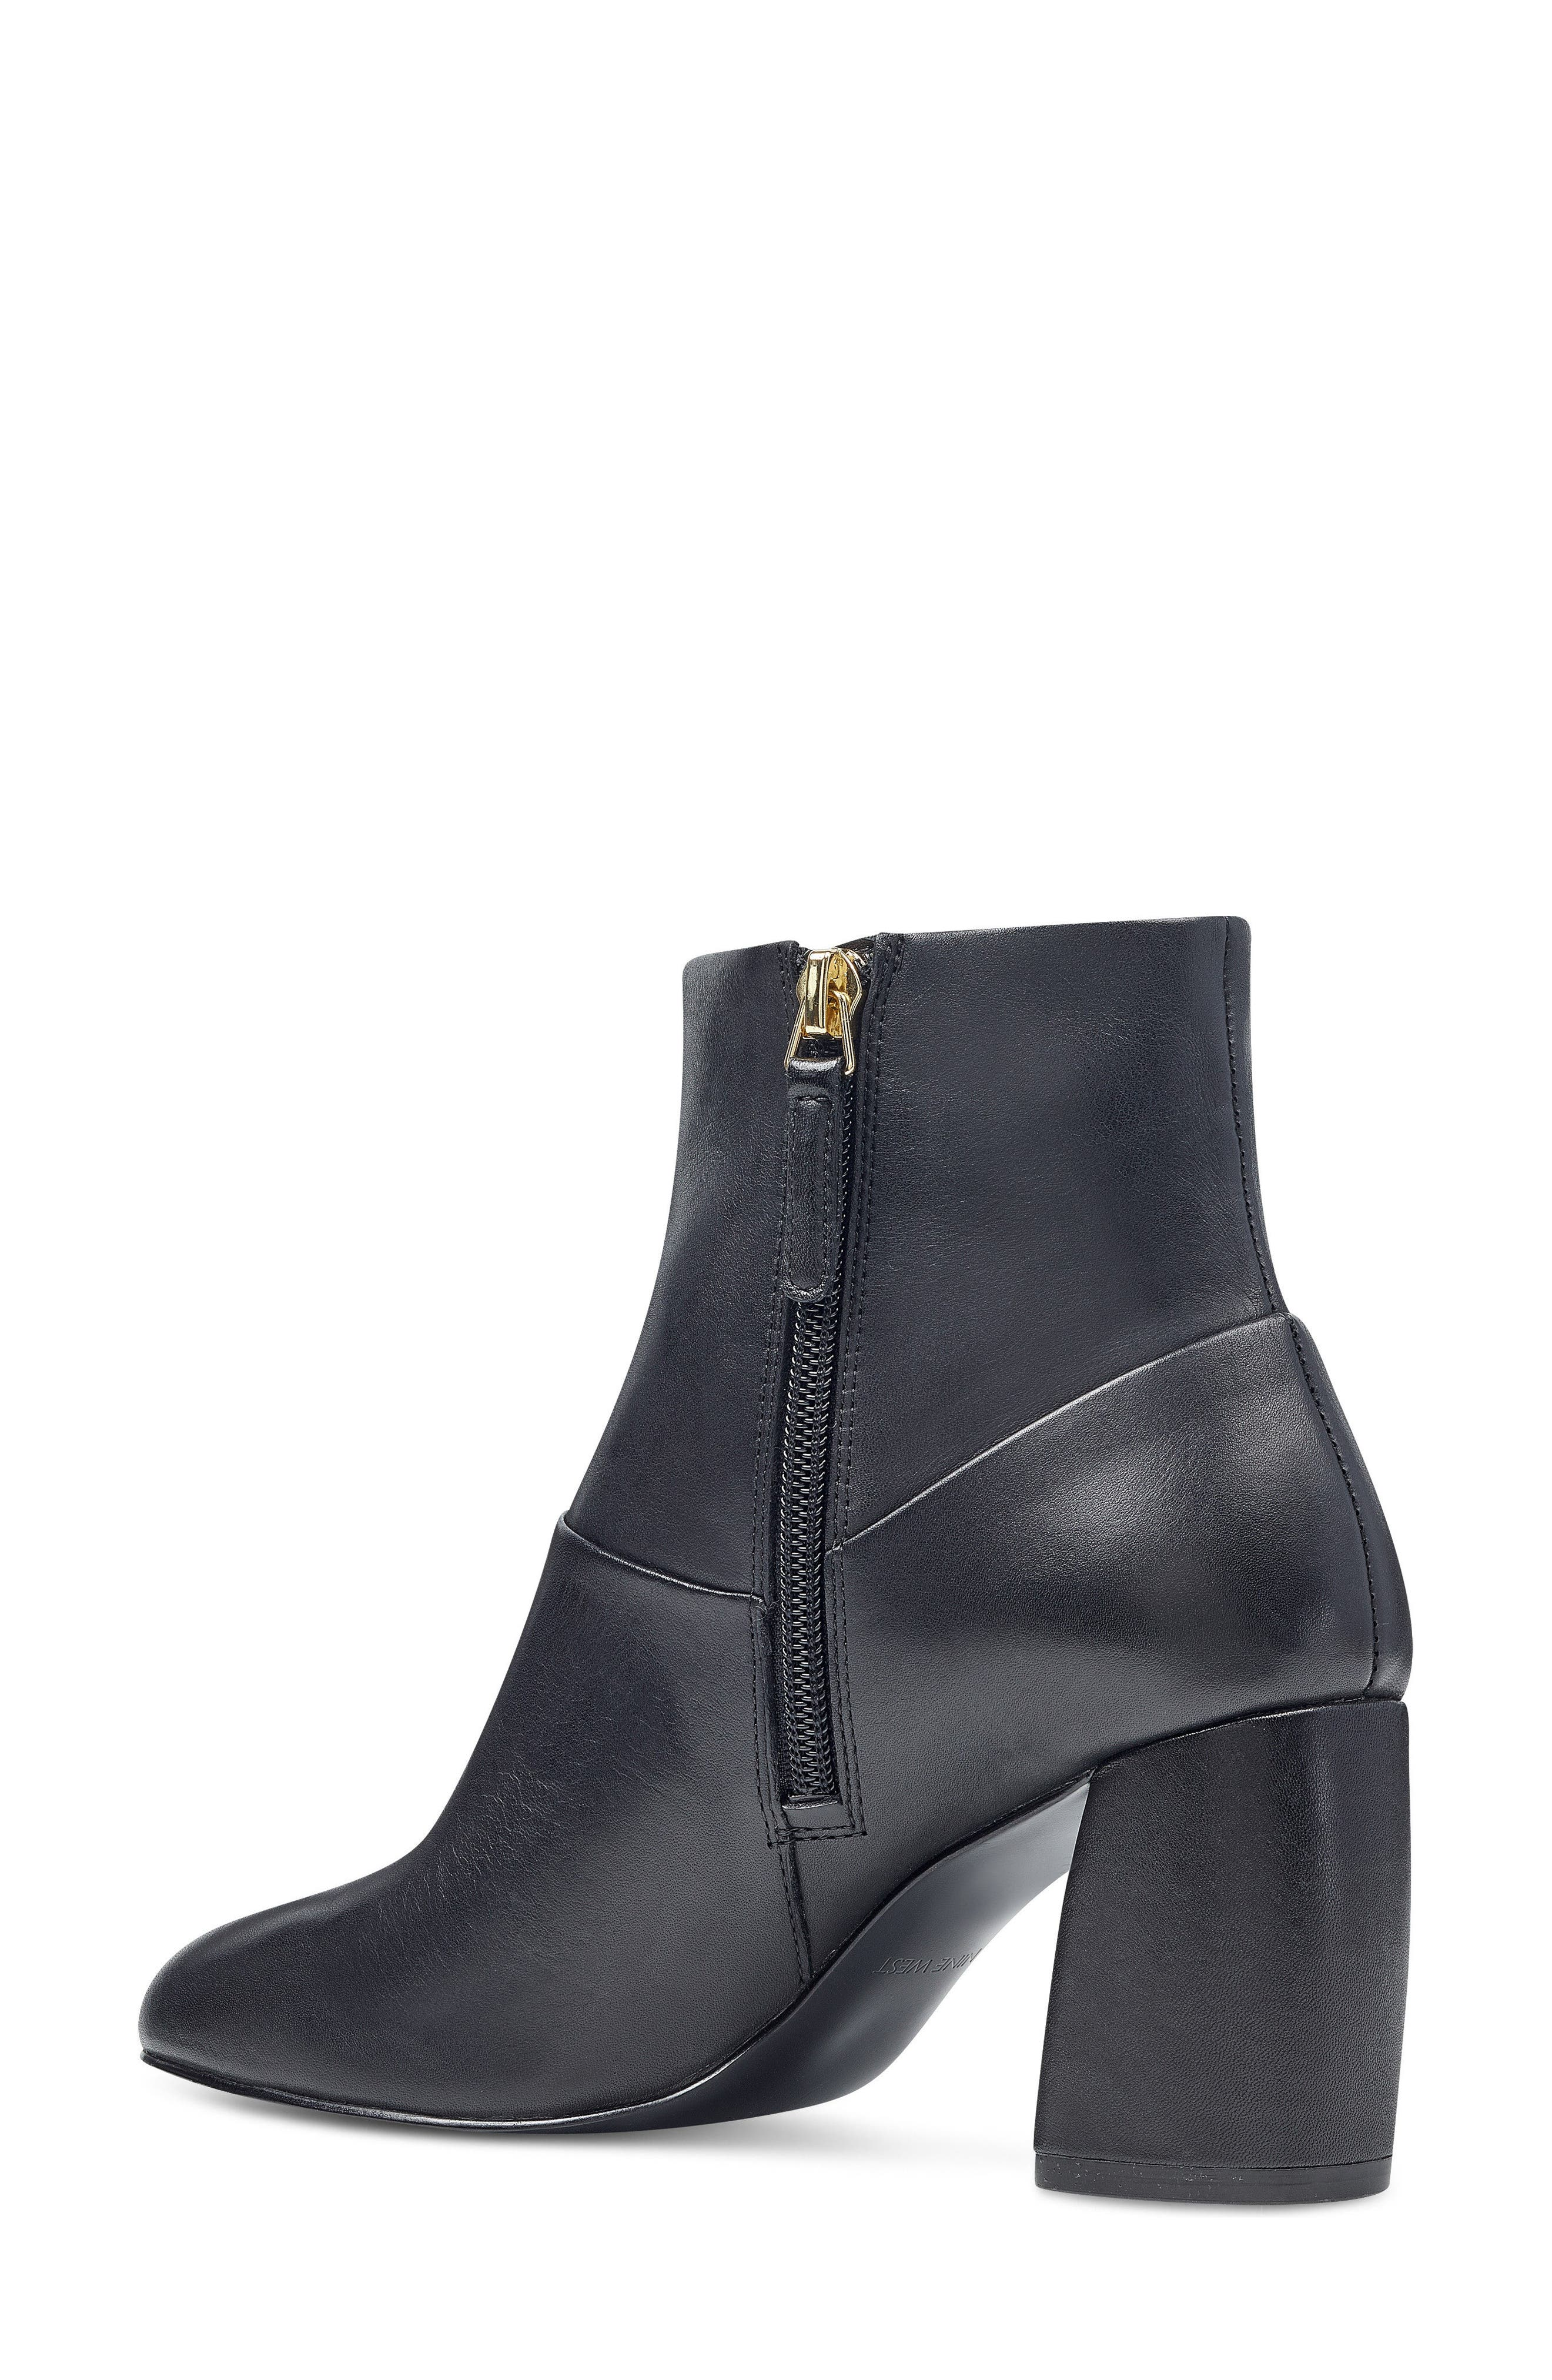 Kirtley Bootie,                             Alternate thumbnail 2, color,                             Black Leather